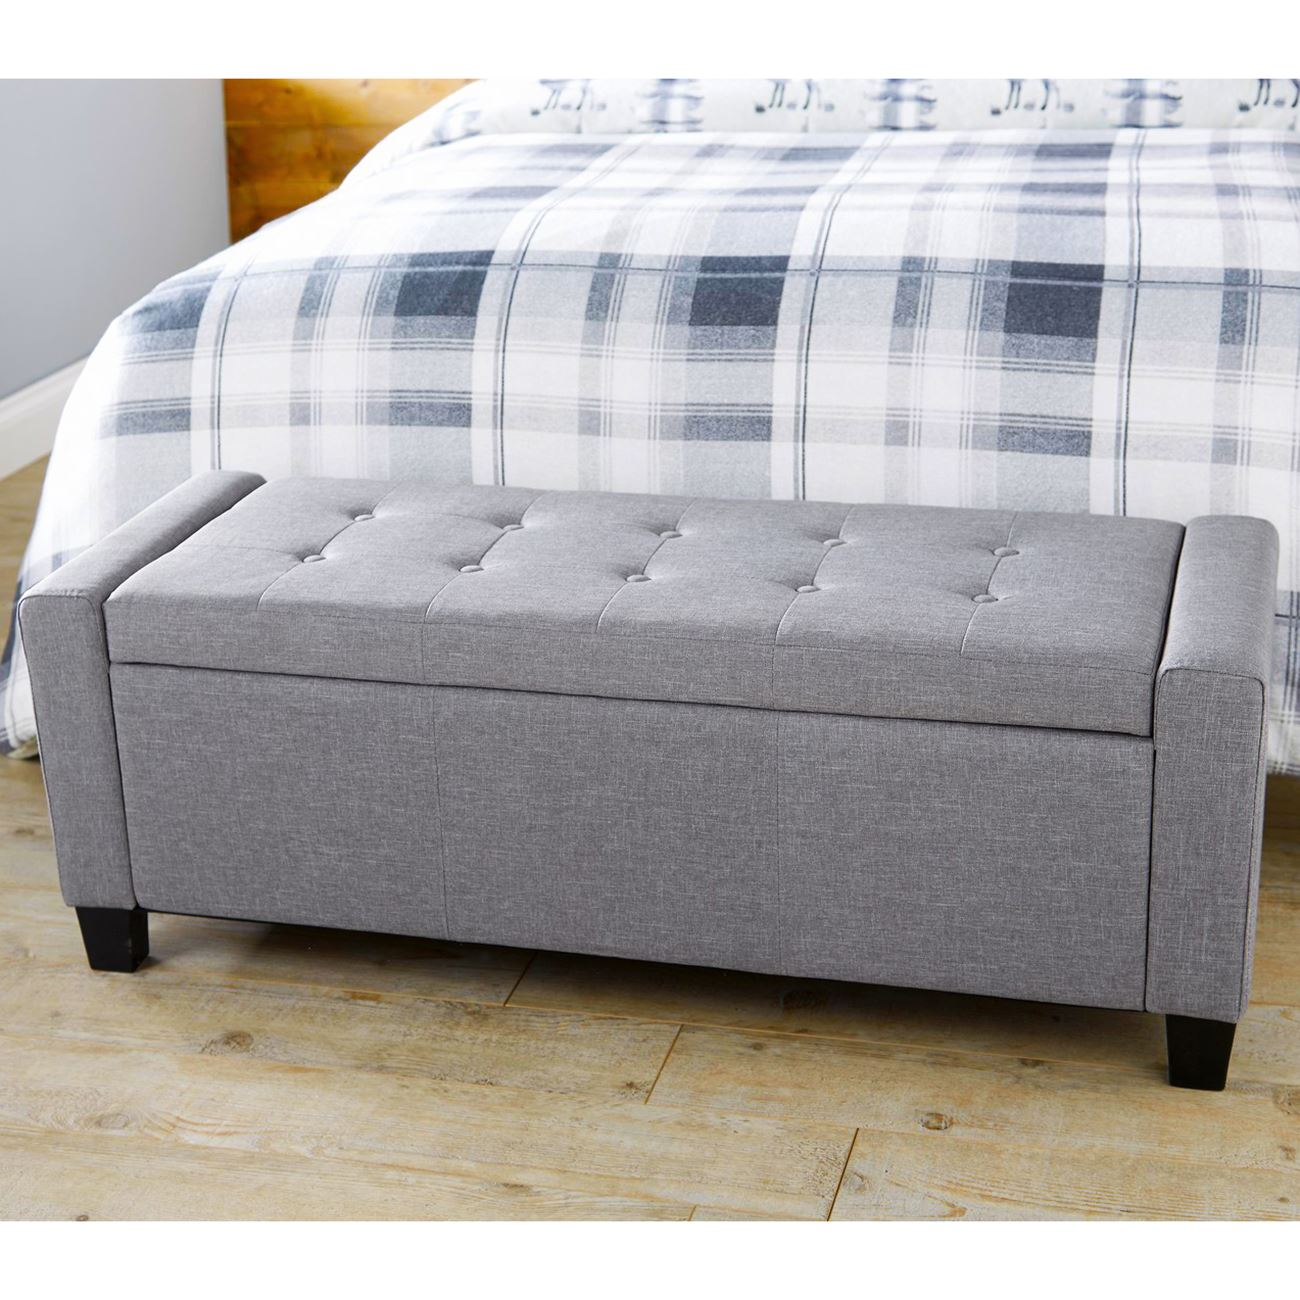 Verona ottoman storage blanket box hopsack fabric seat bench foot stool silver ebay Gray storage bench